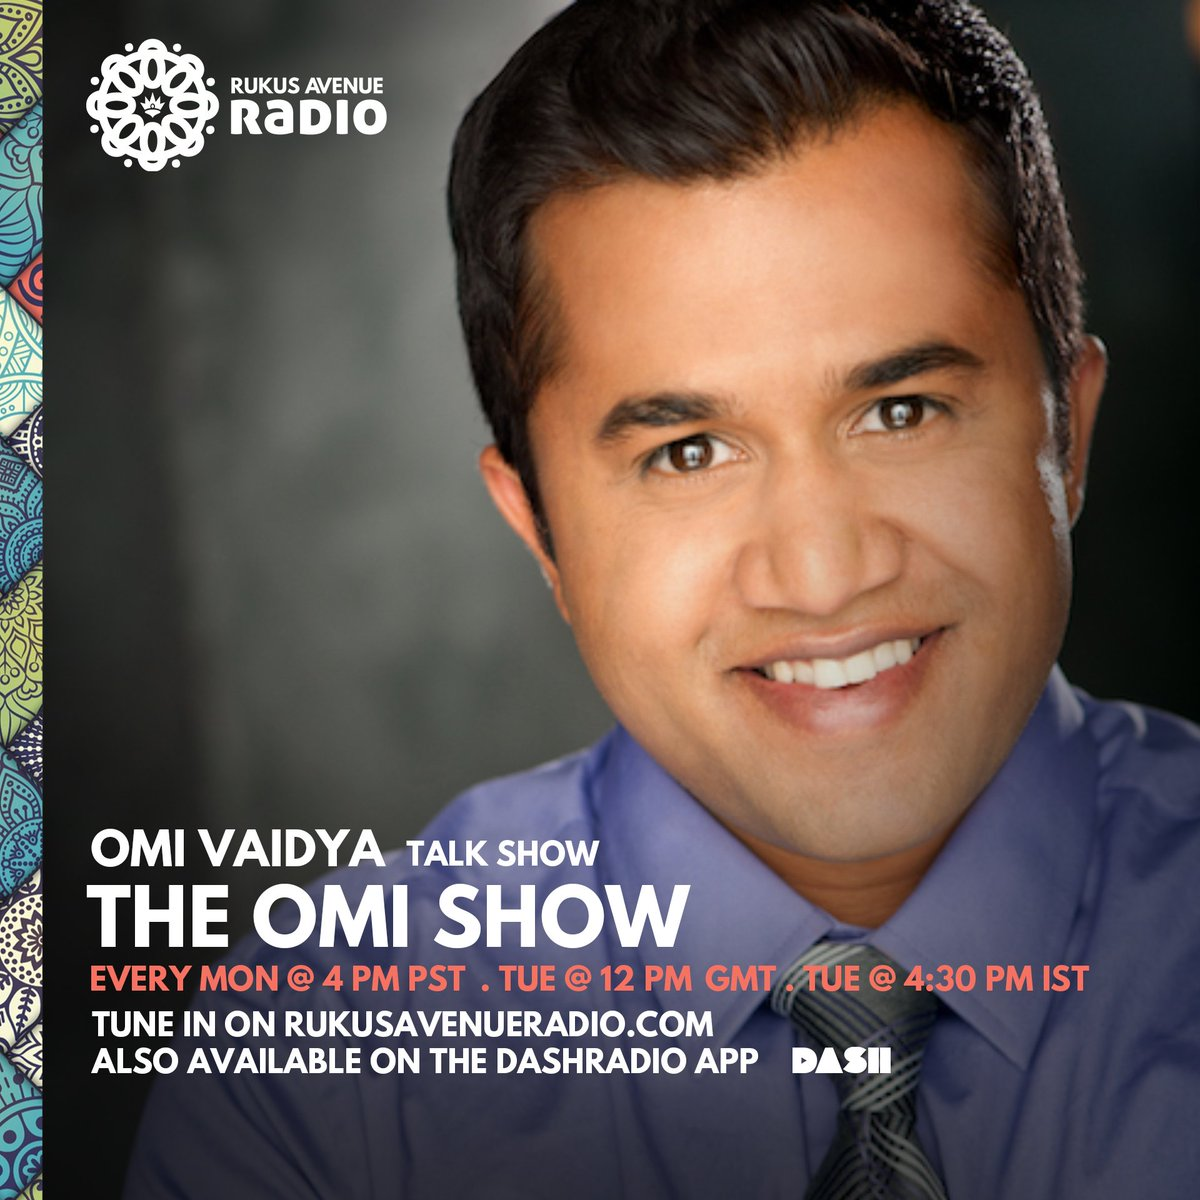 Couldn't be more excited to announce my new radio show #TheOmiShow premiering April 8th on the world's first mainstream South Asian radio station @RukusAvenueRadio available to over 10 million monthly listeners on @DASH_Radio launched by mini music mogul @SammyChand. https://t.co/BYk2HWG7ez